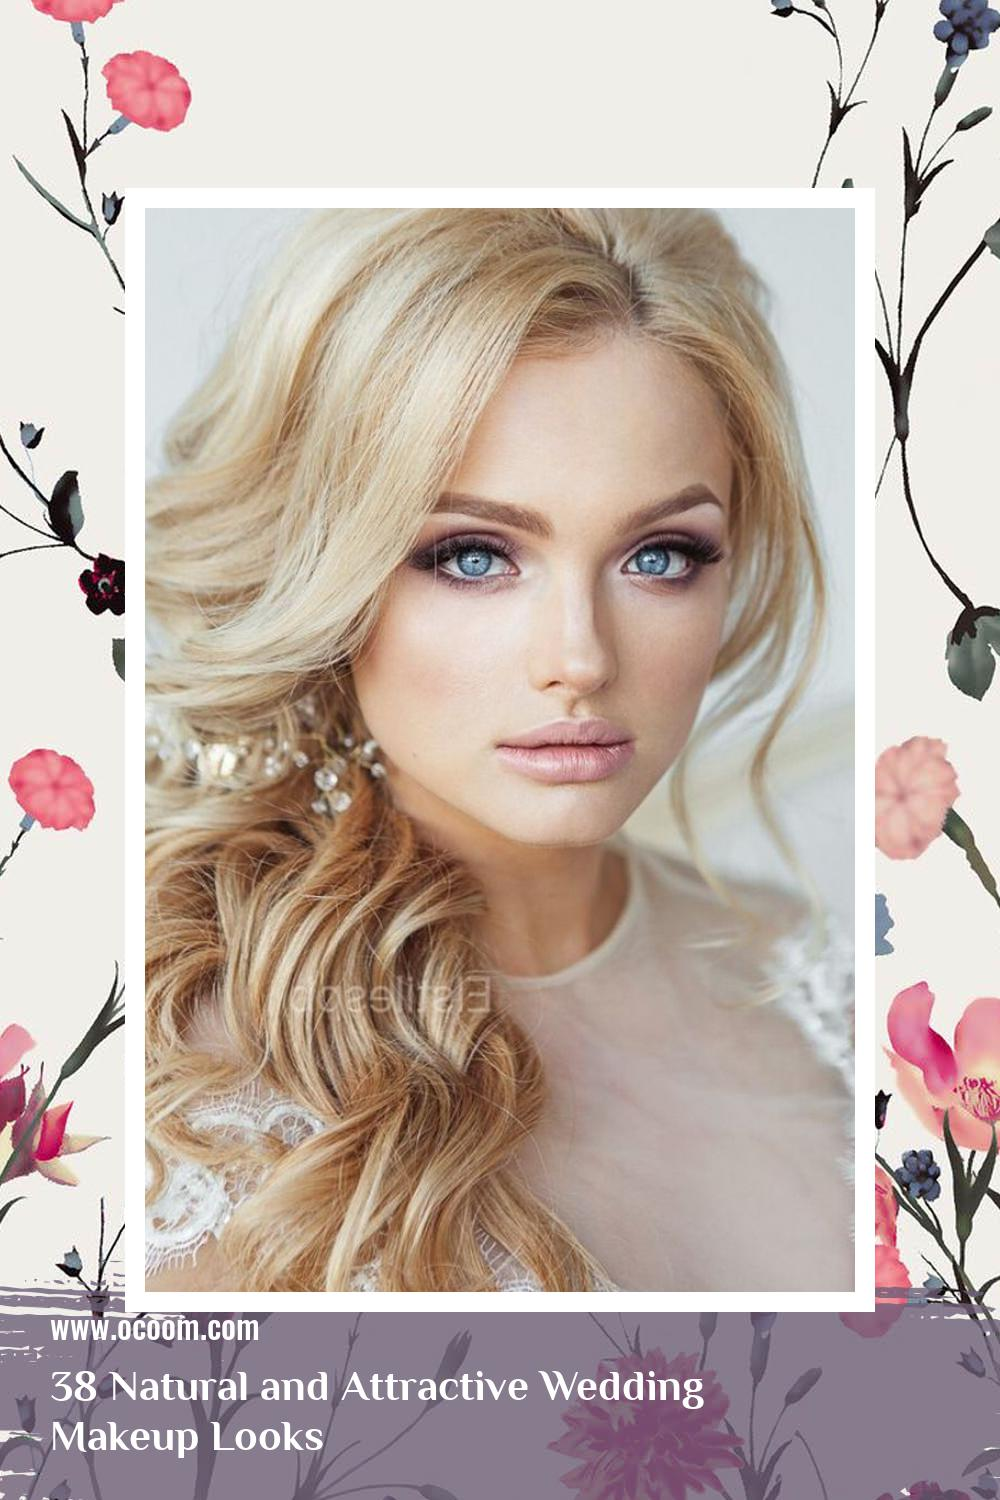 38 Natural and Attractive Wedding Makeup Looks 5